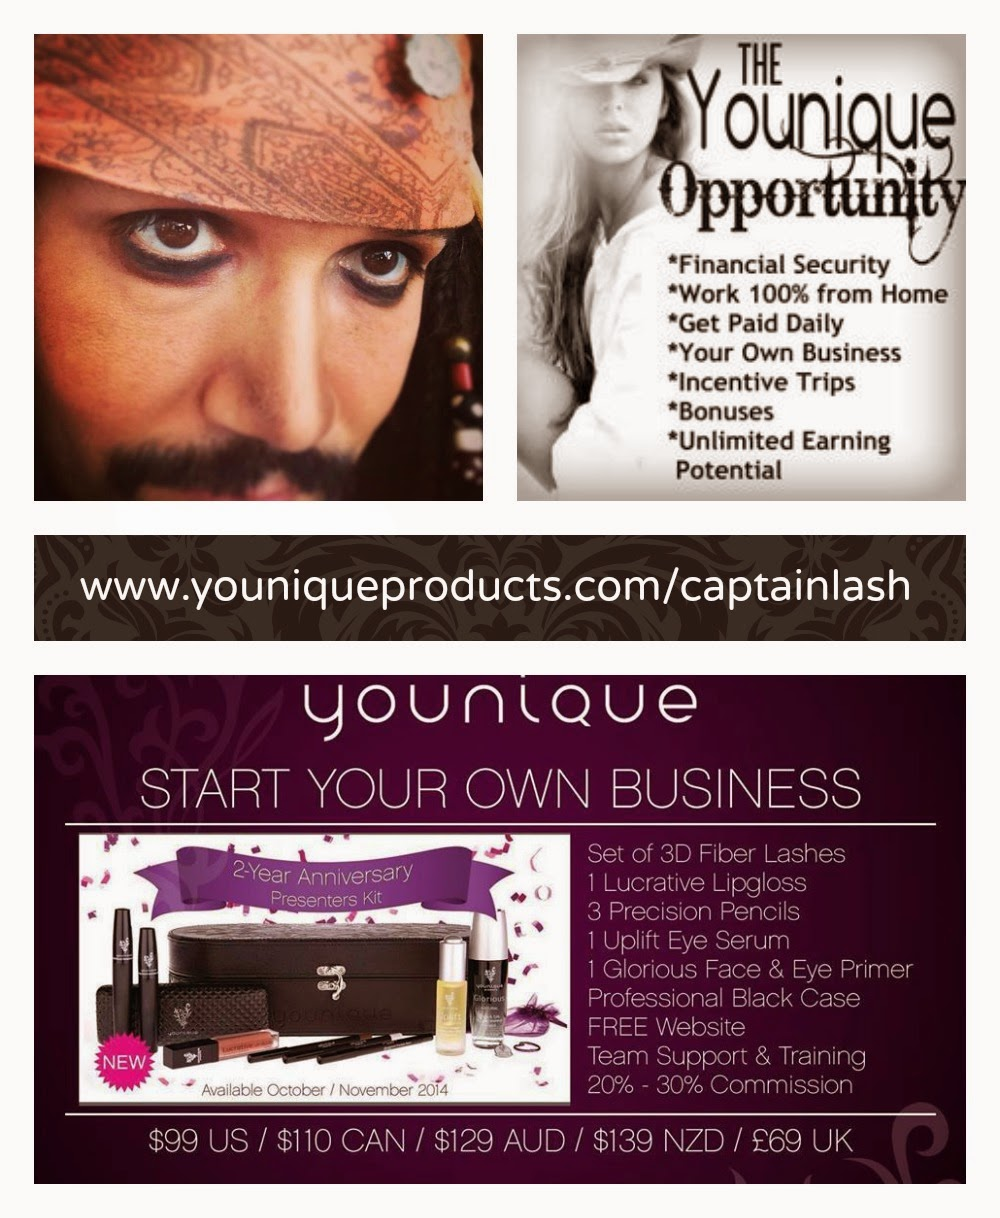 https://www.youniqueproducts.com/captainlash/business